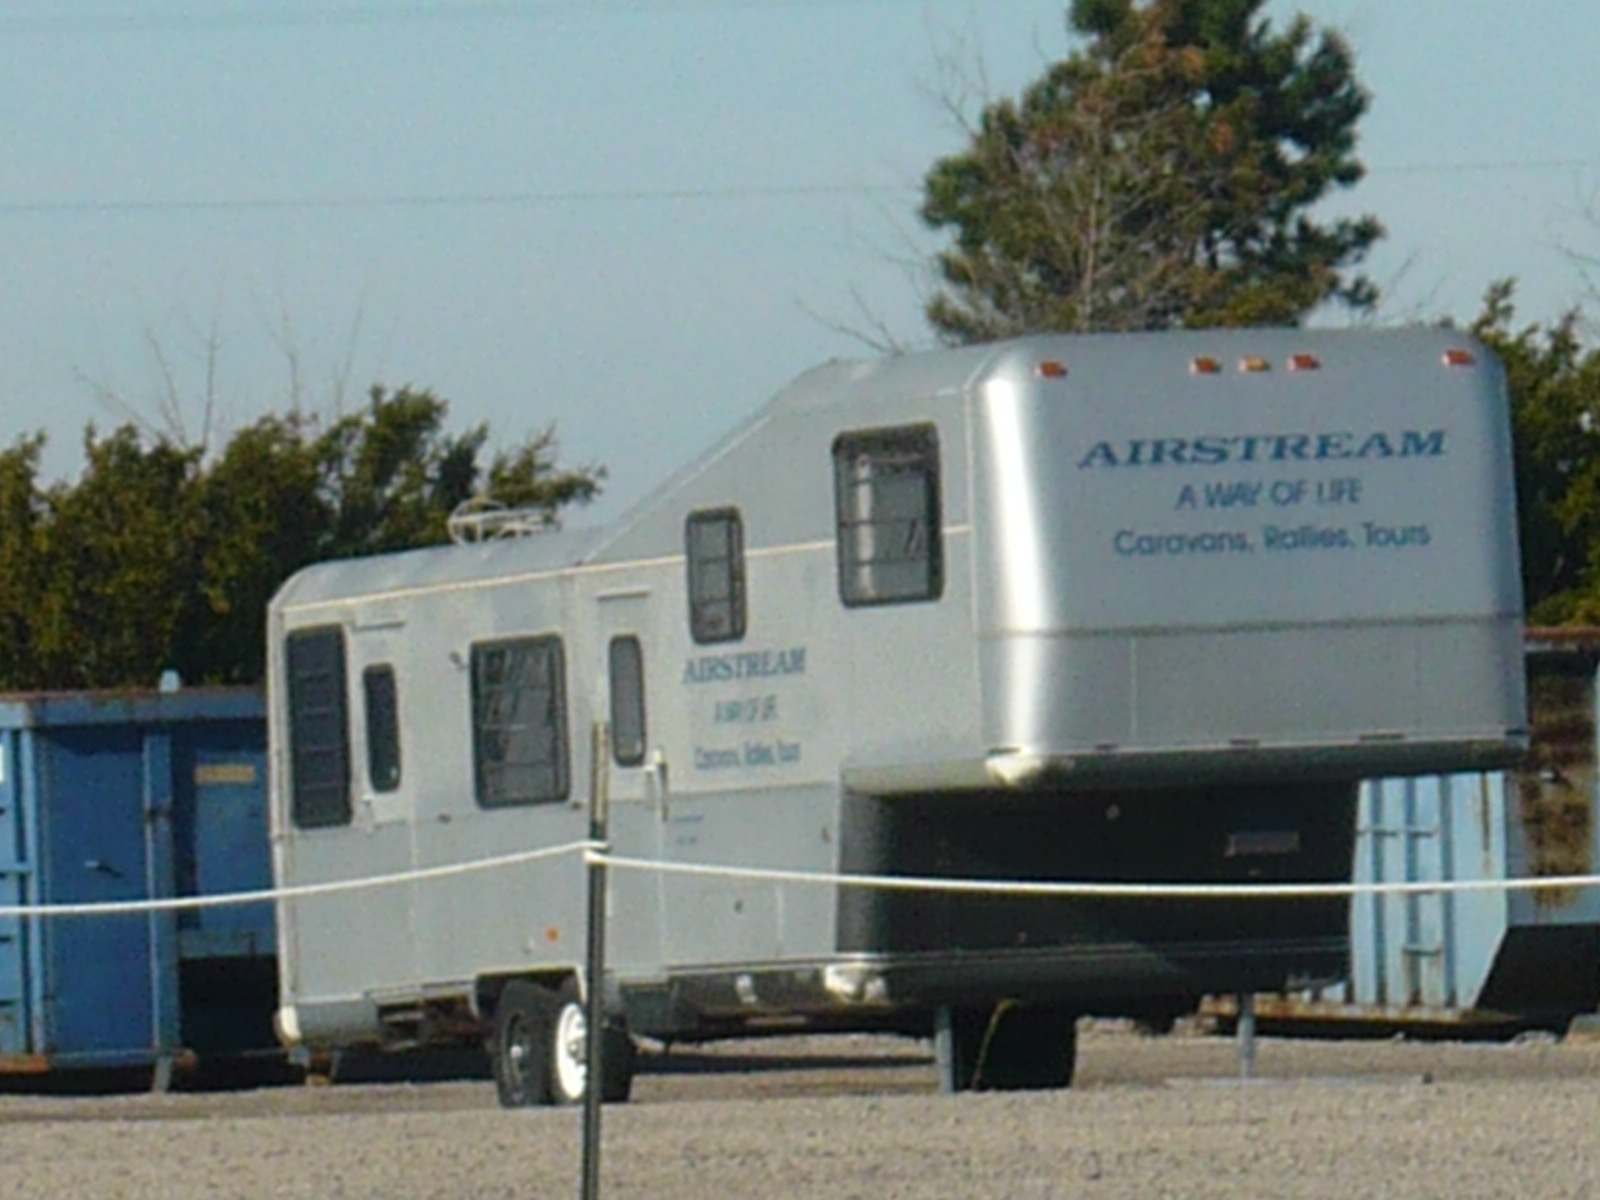 1990 Avion 5th Wheel - Page 2 - Airstream Forums